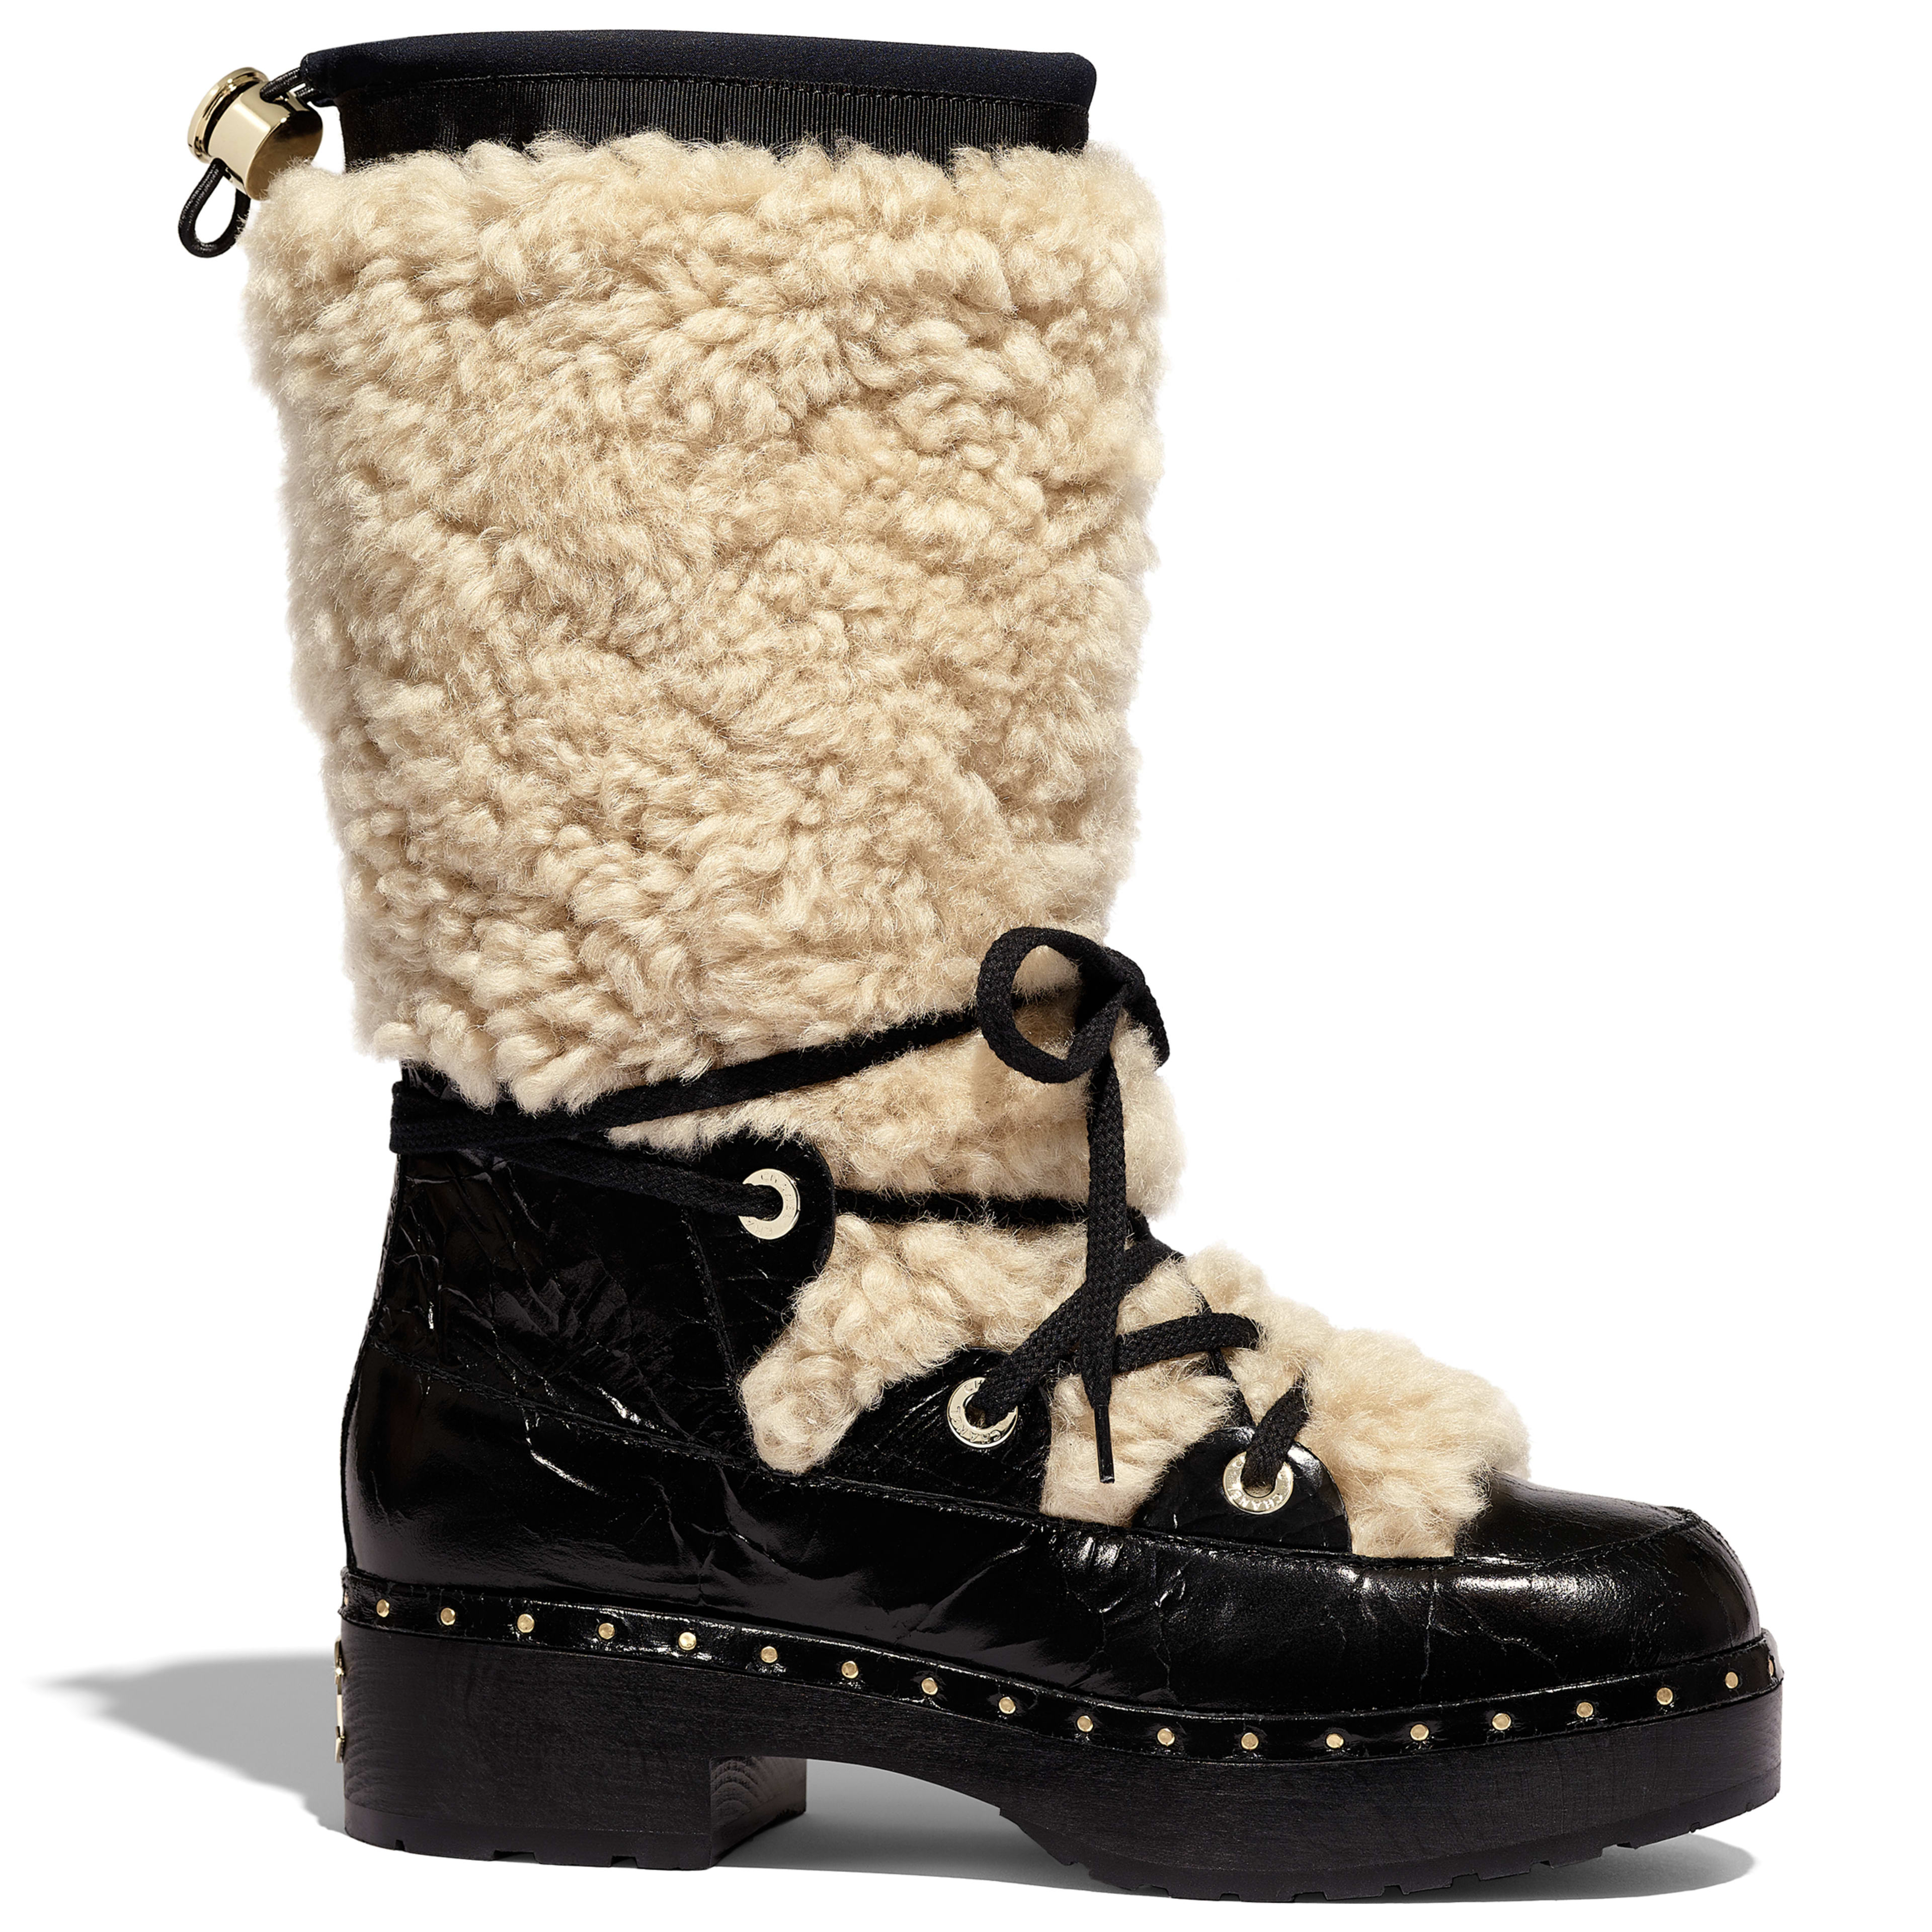 High Boots - Beige & Black - Shearling & Crackled Sheepskin - Default view - see full sized version